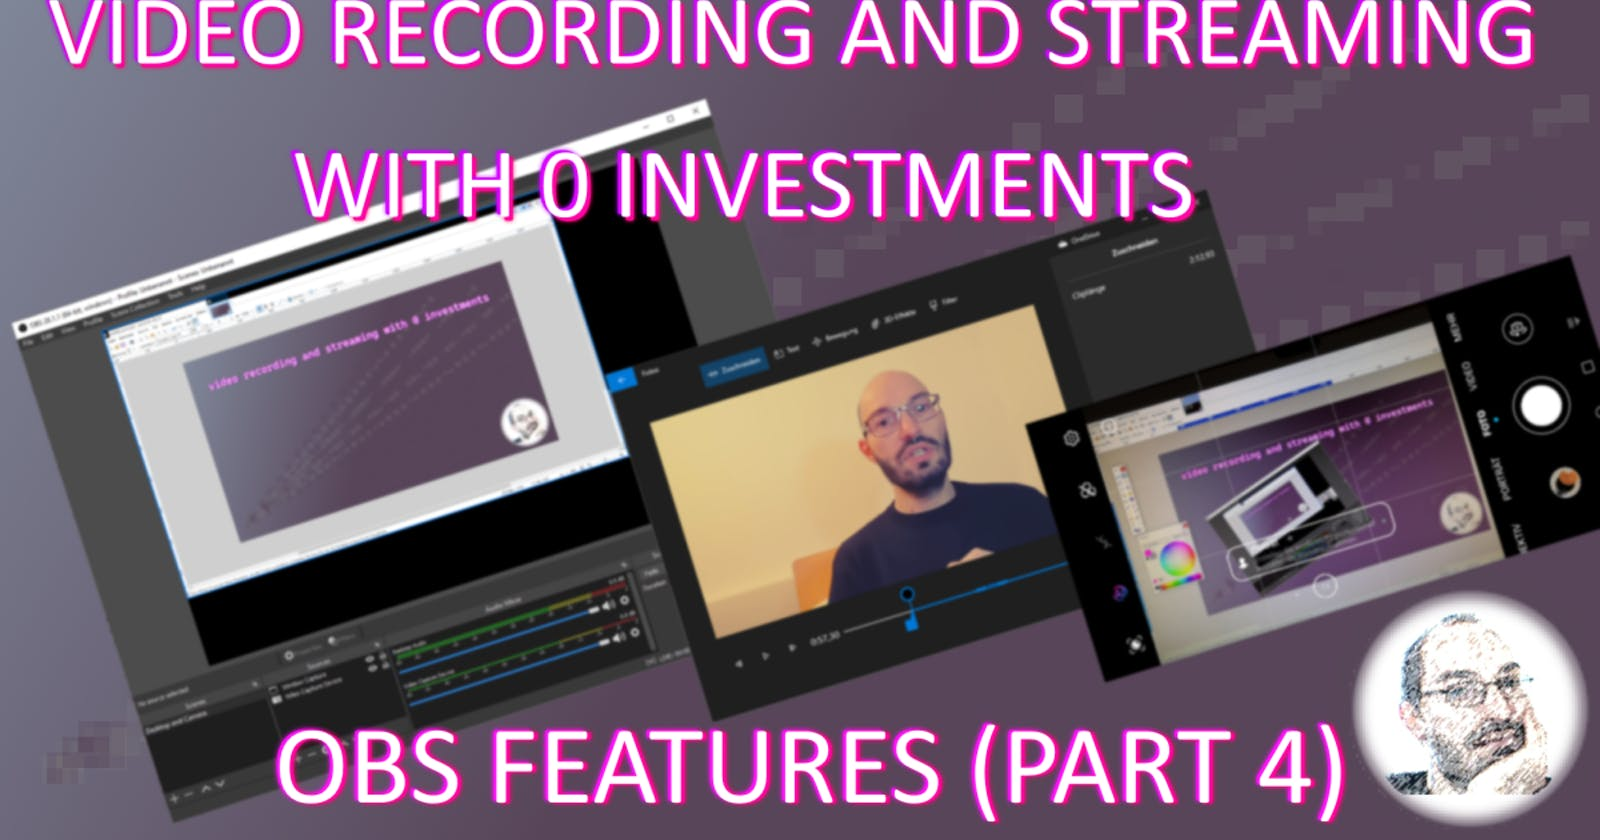 Video recording and streaming with 0 investments - OBS features